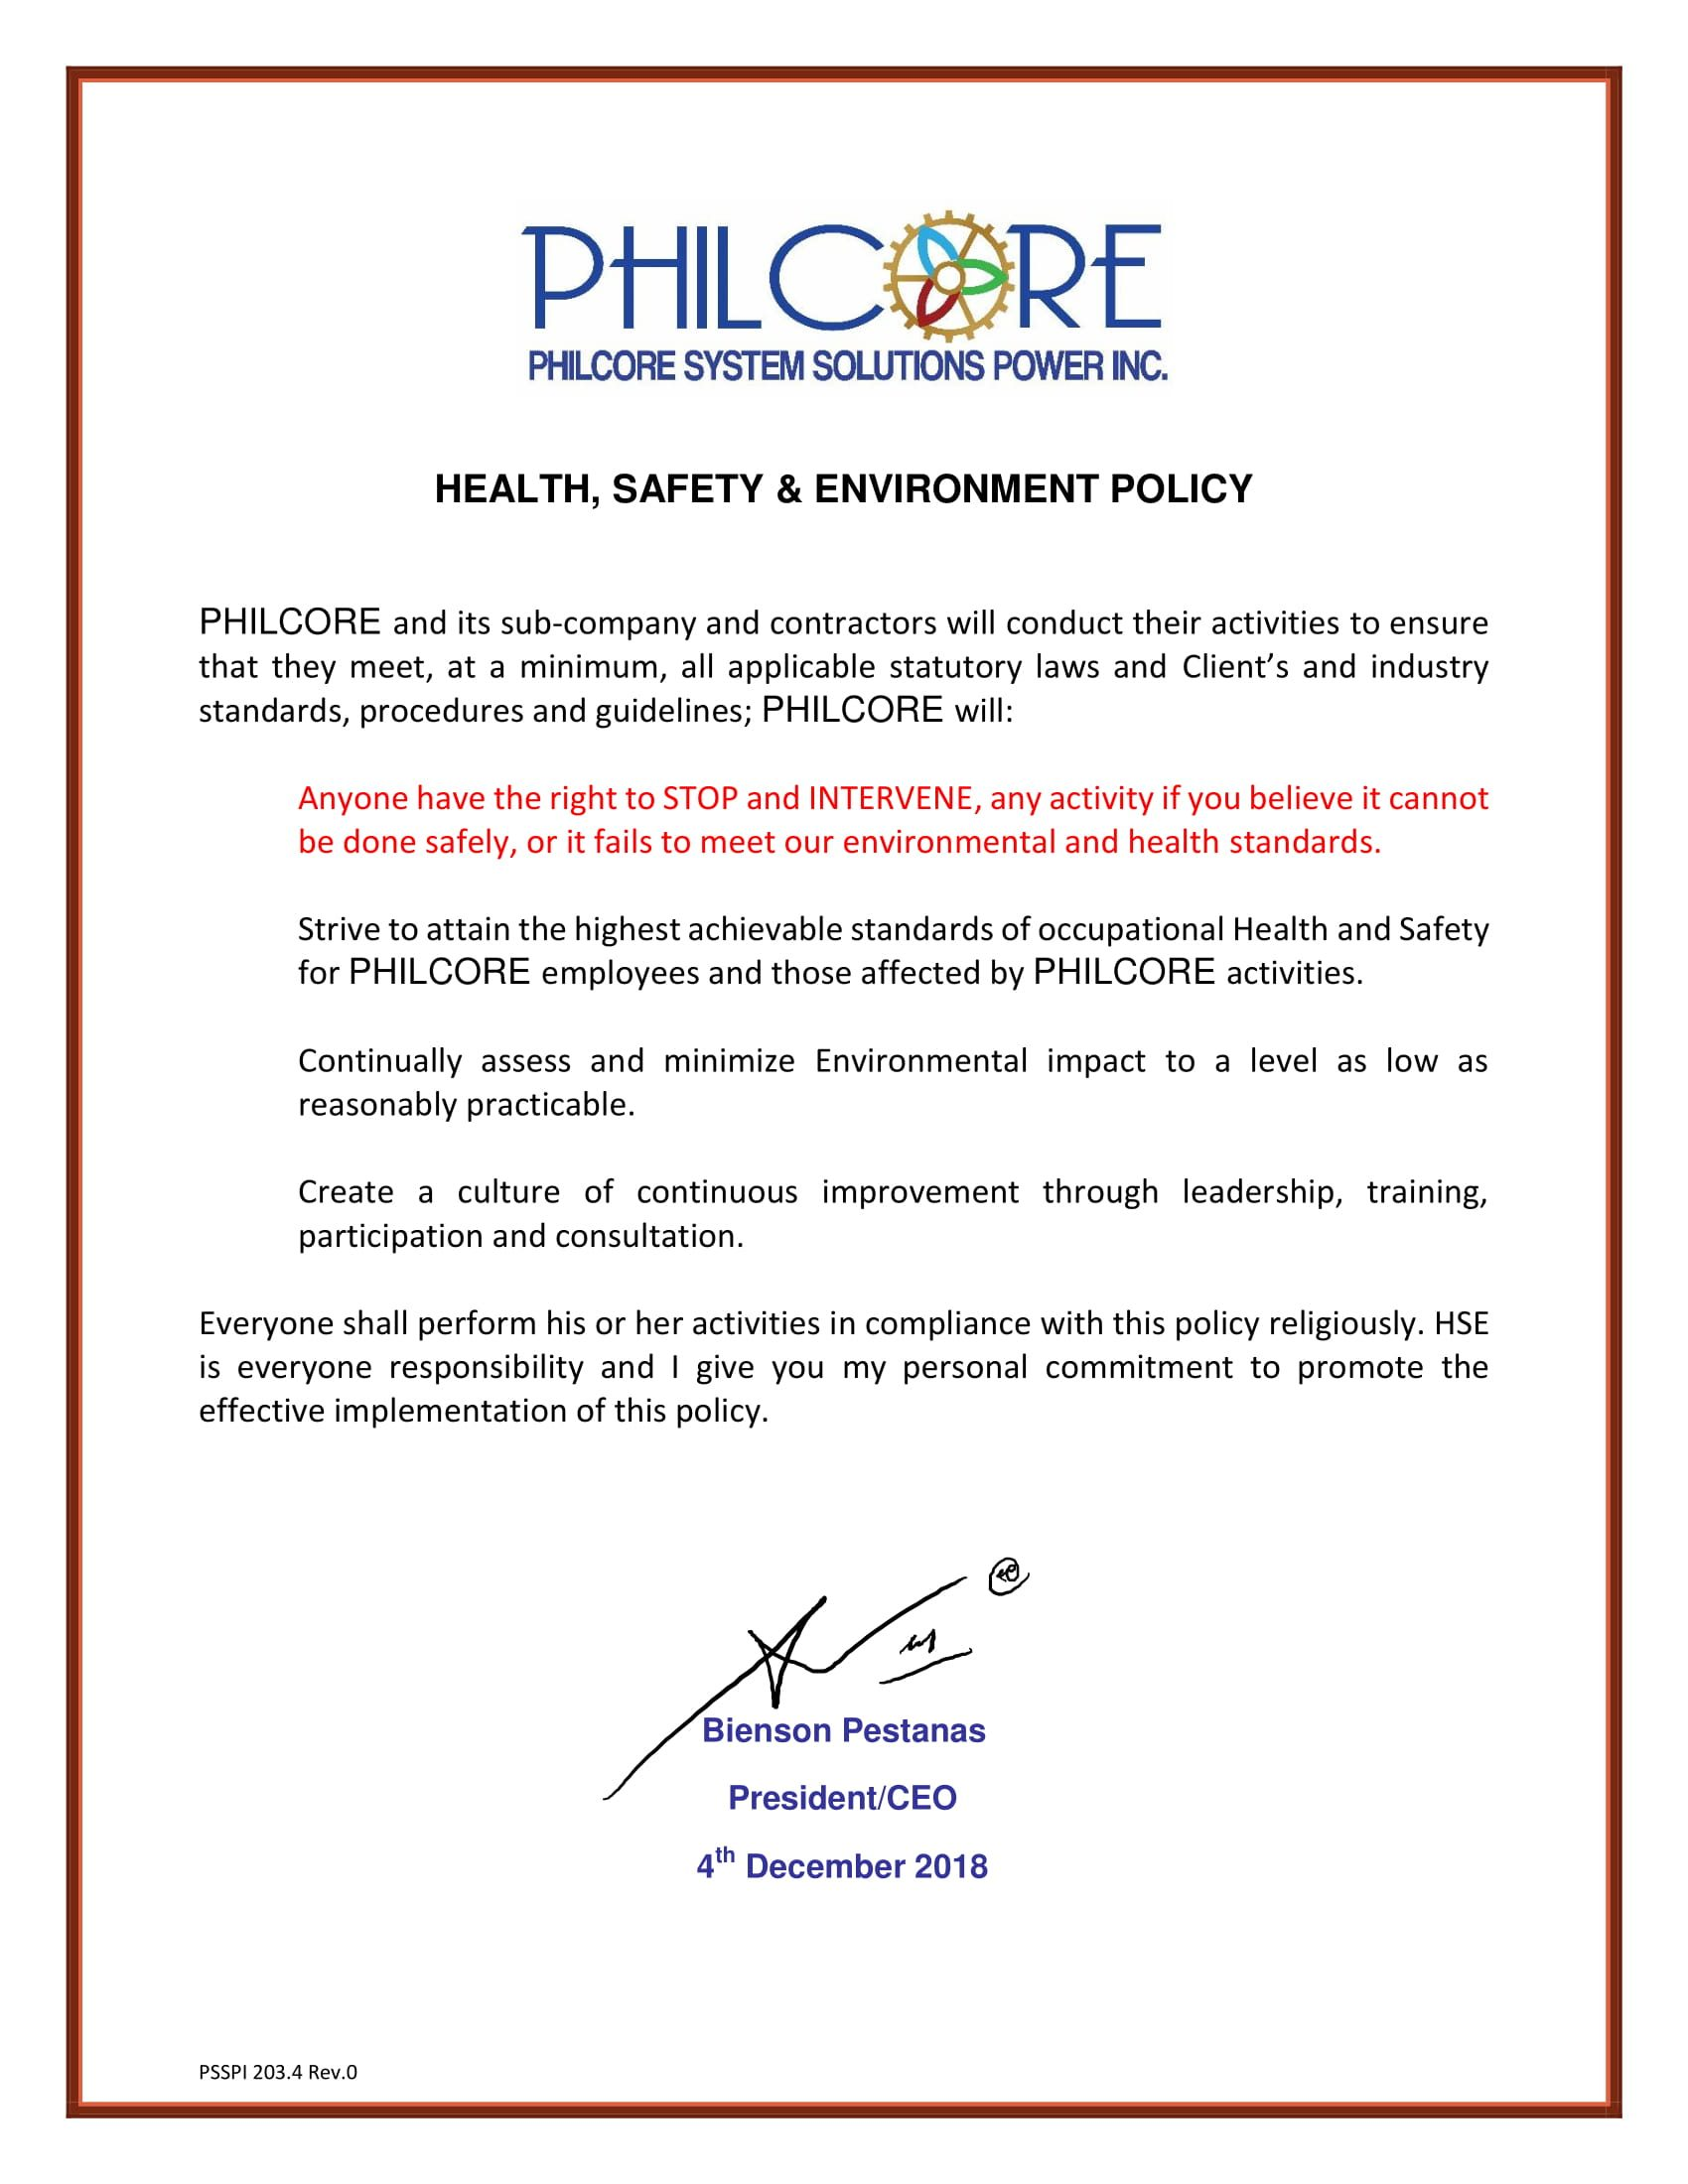 Health Safety Environment Policy Philcore